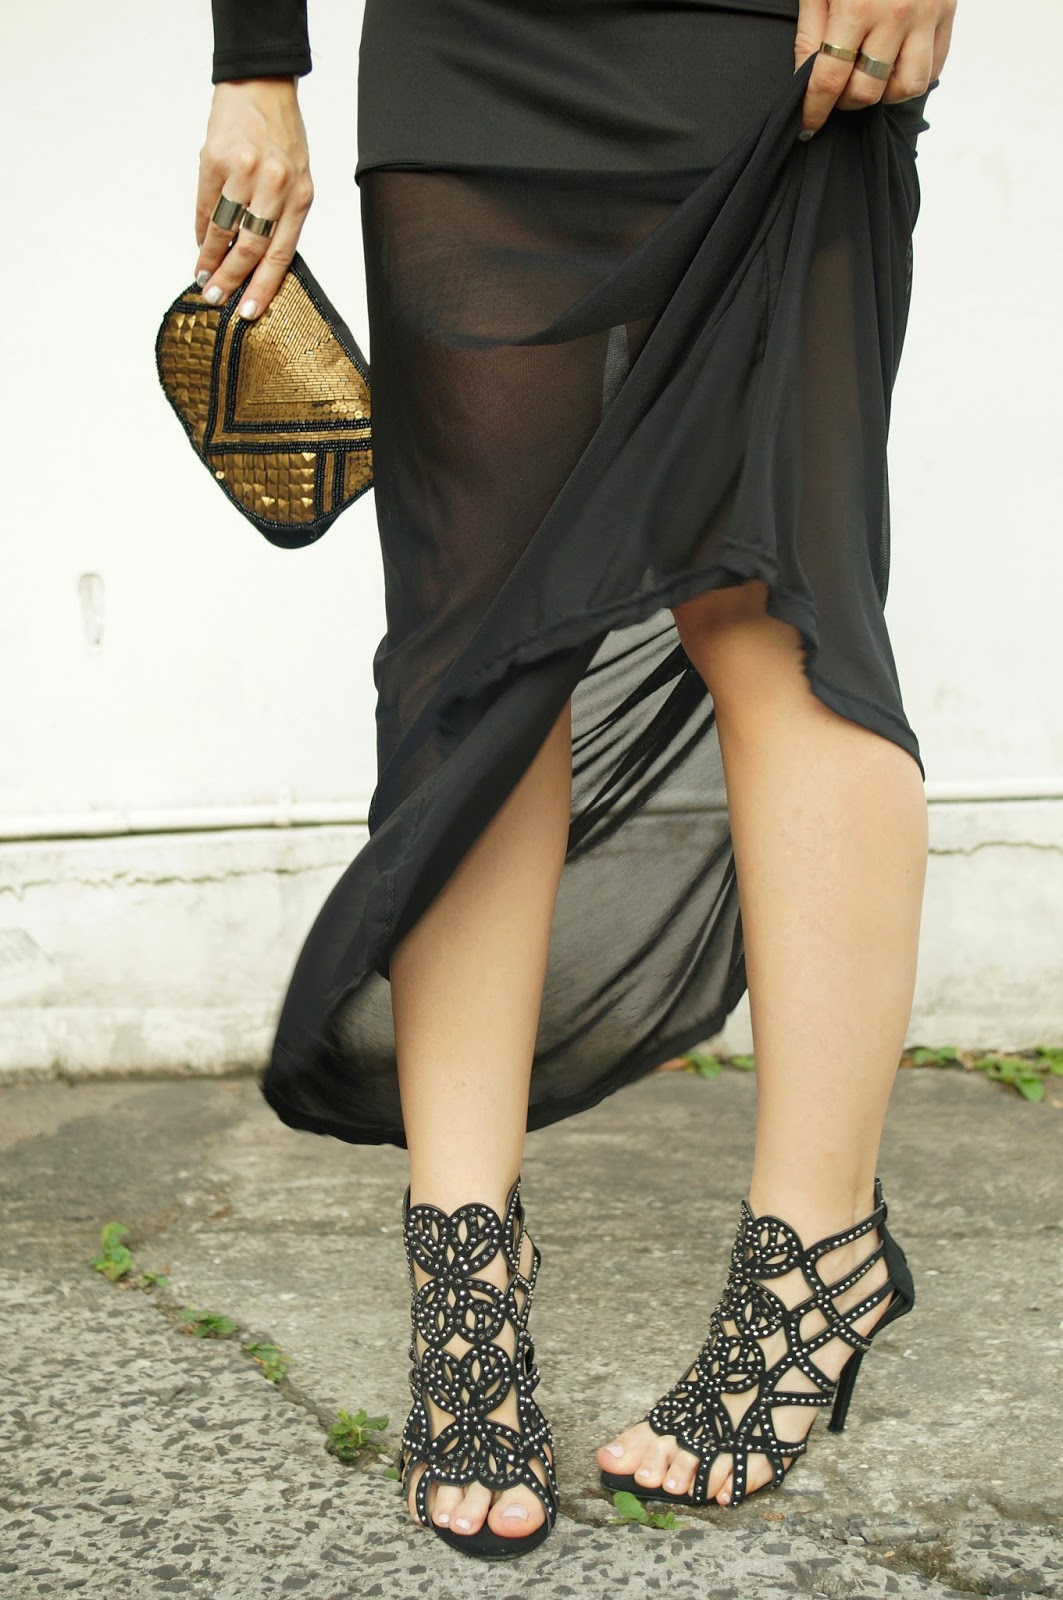 Loving these sexy caged heels!